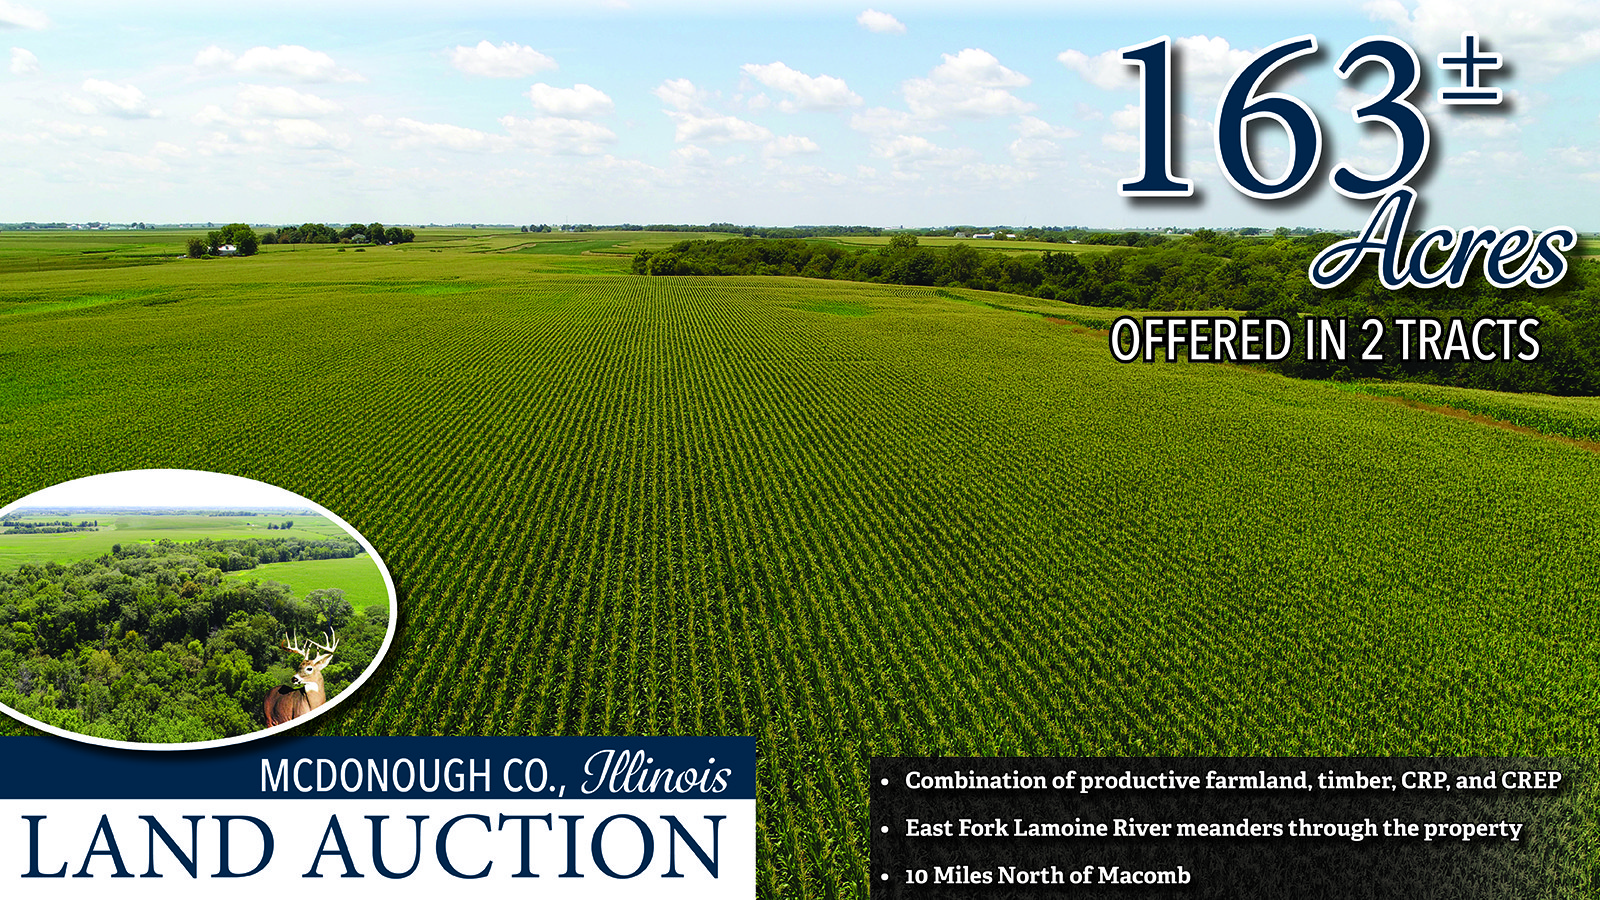 Cover Photo - mcdonough co farmland auction Illinois